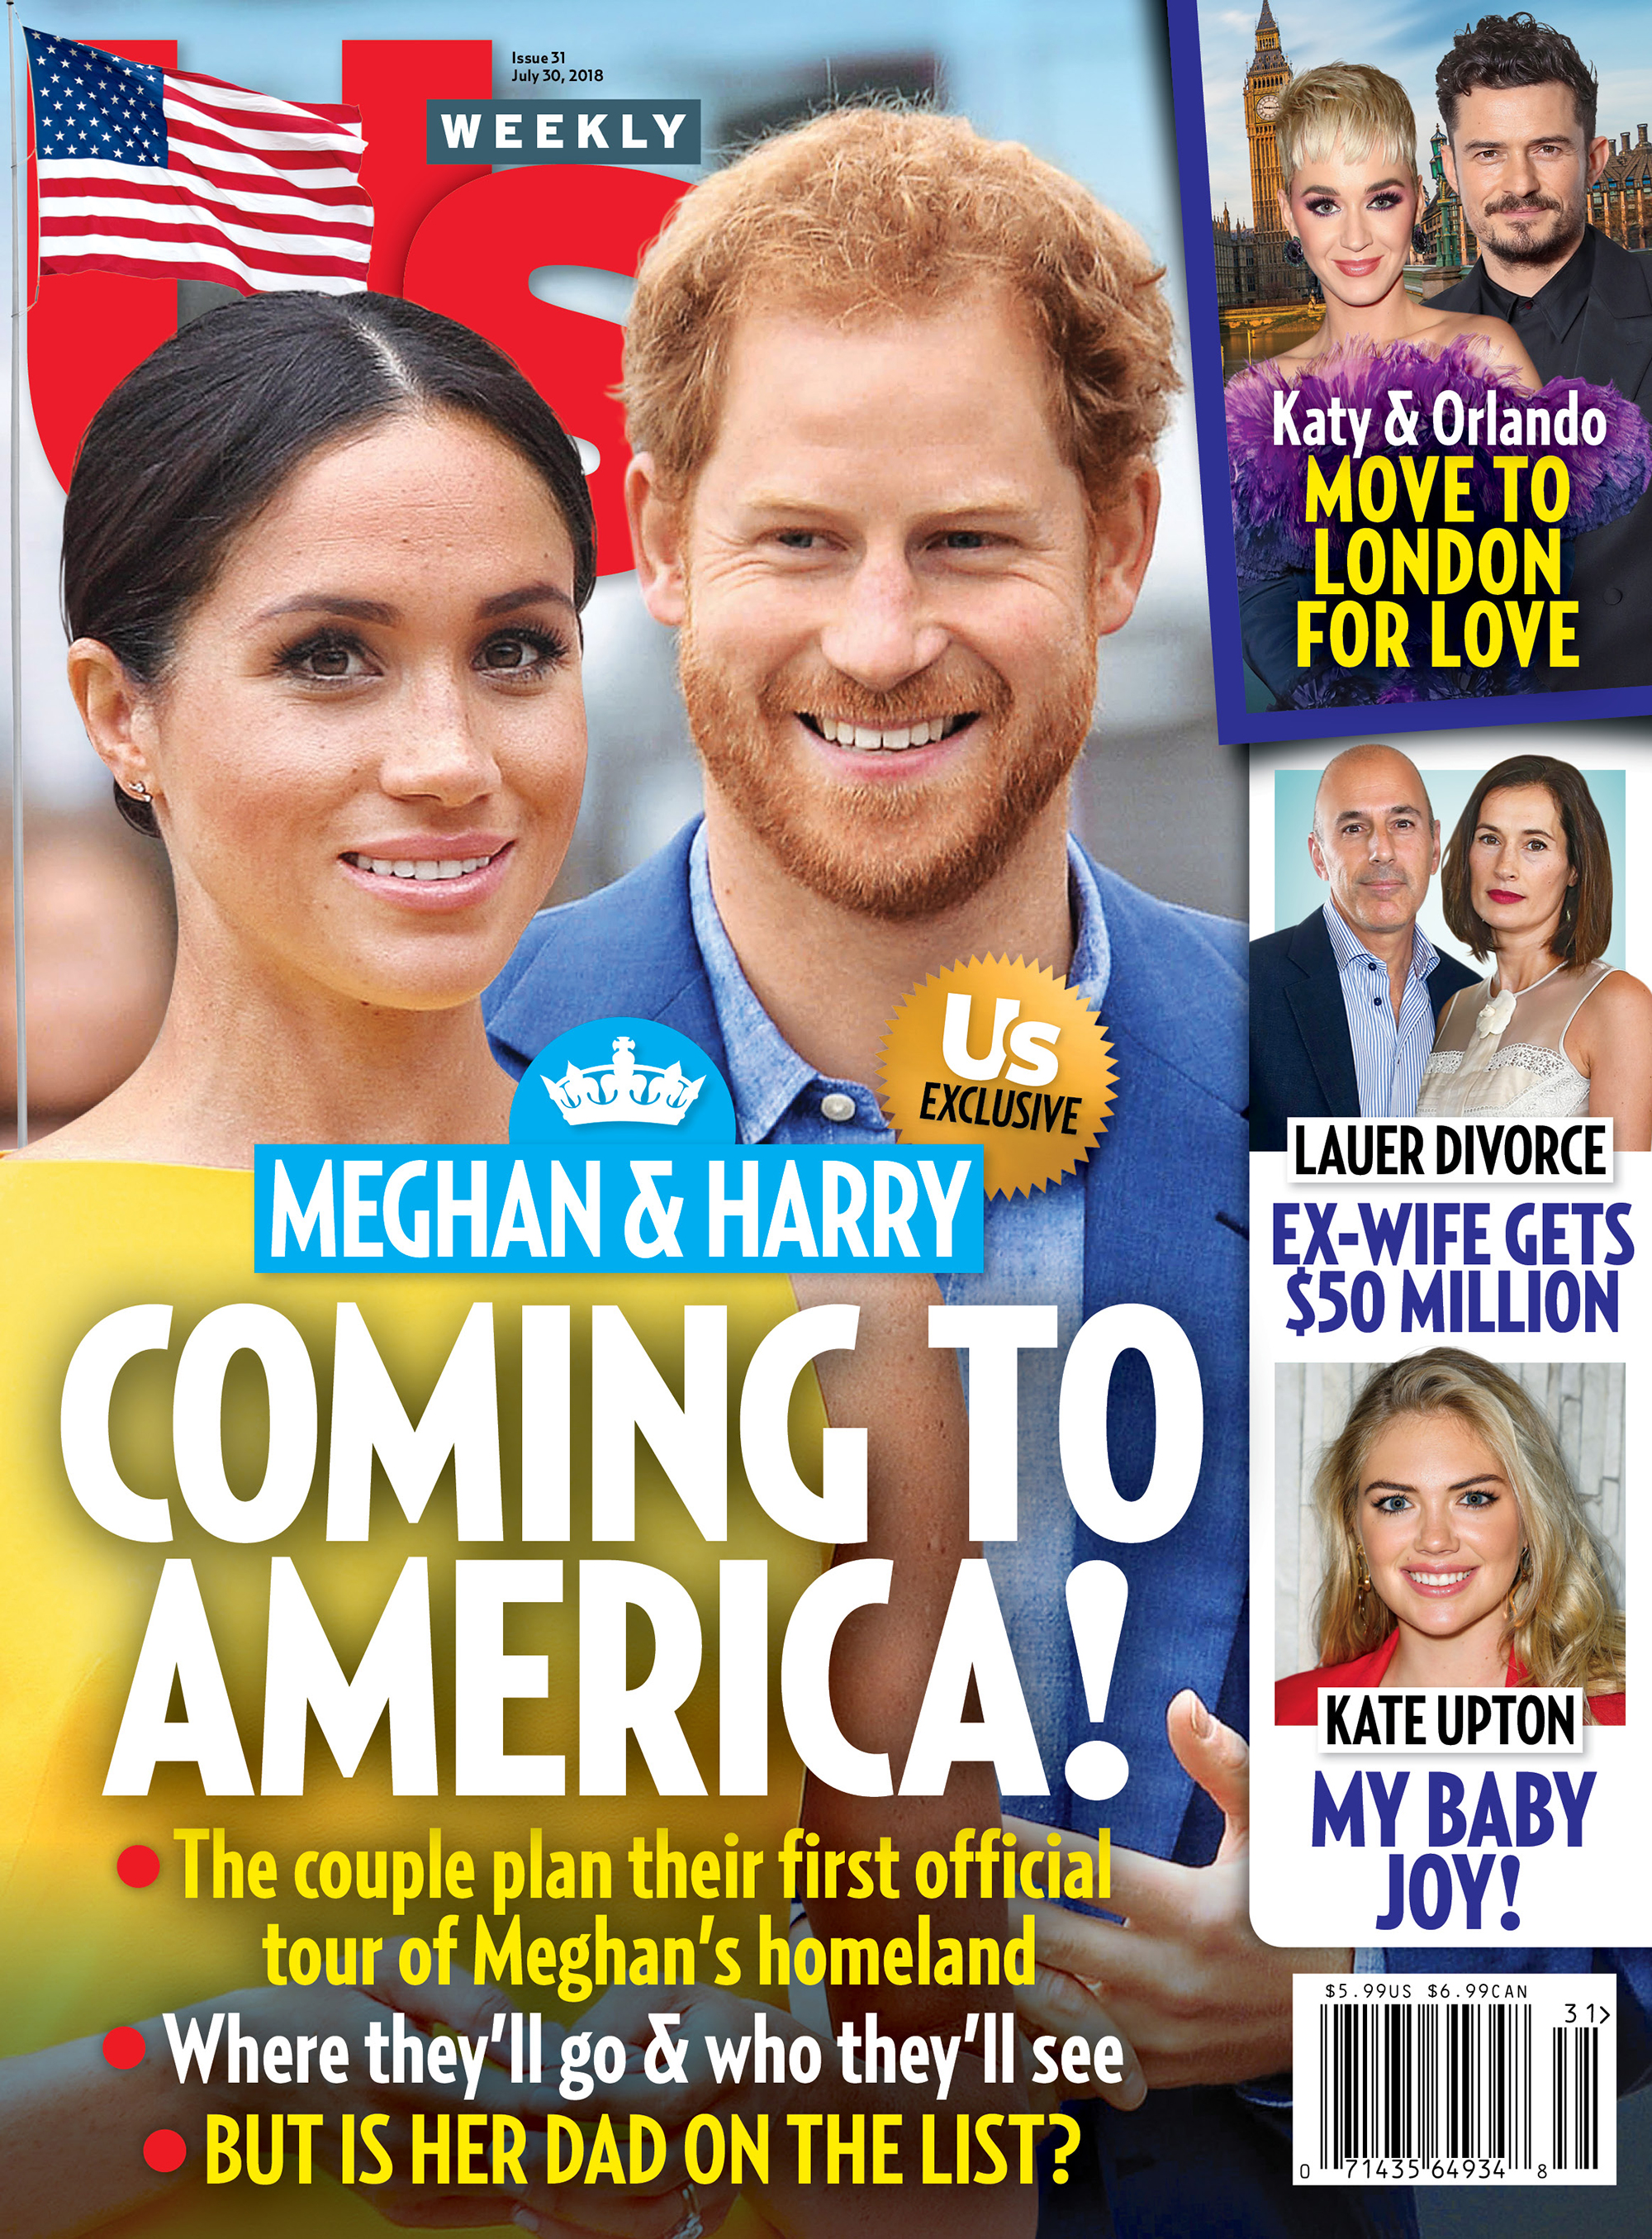 Us cover July 30, 2018